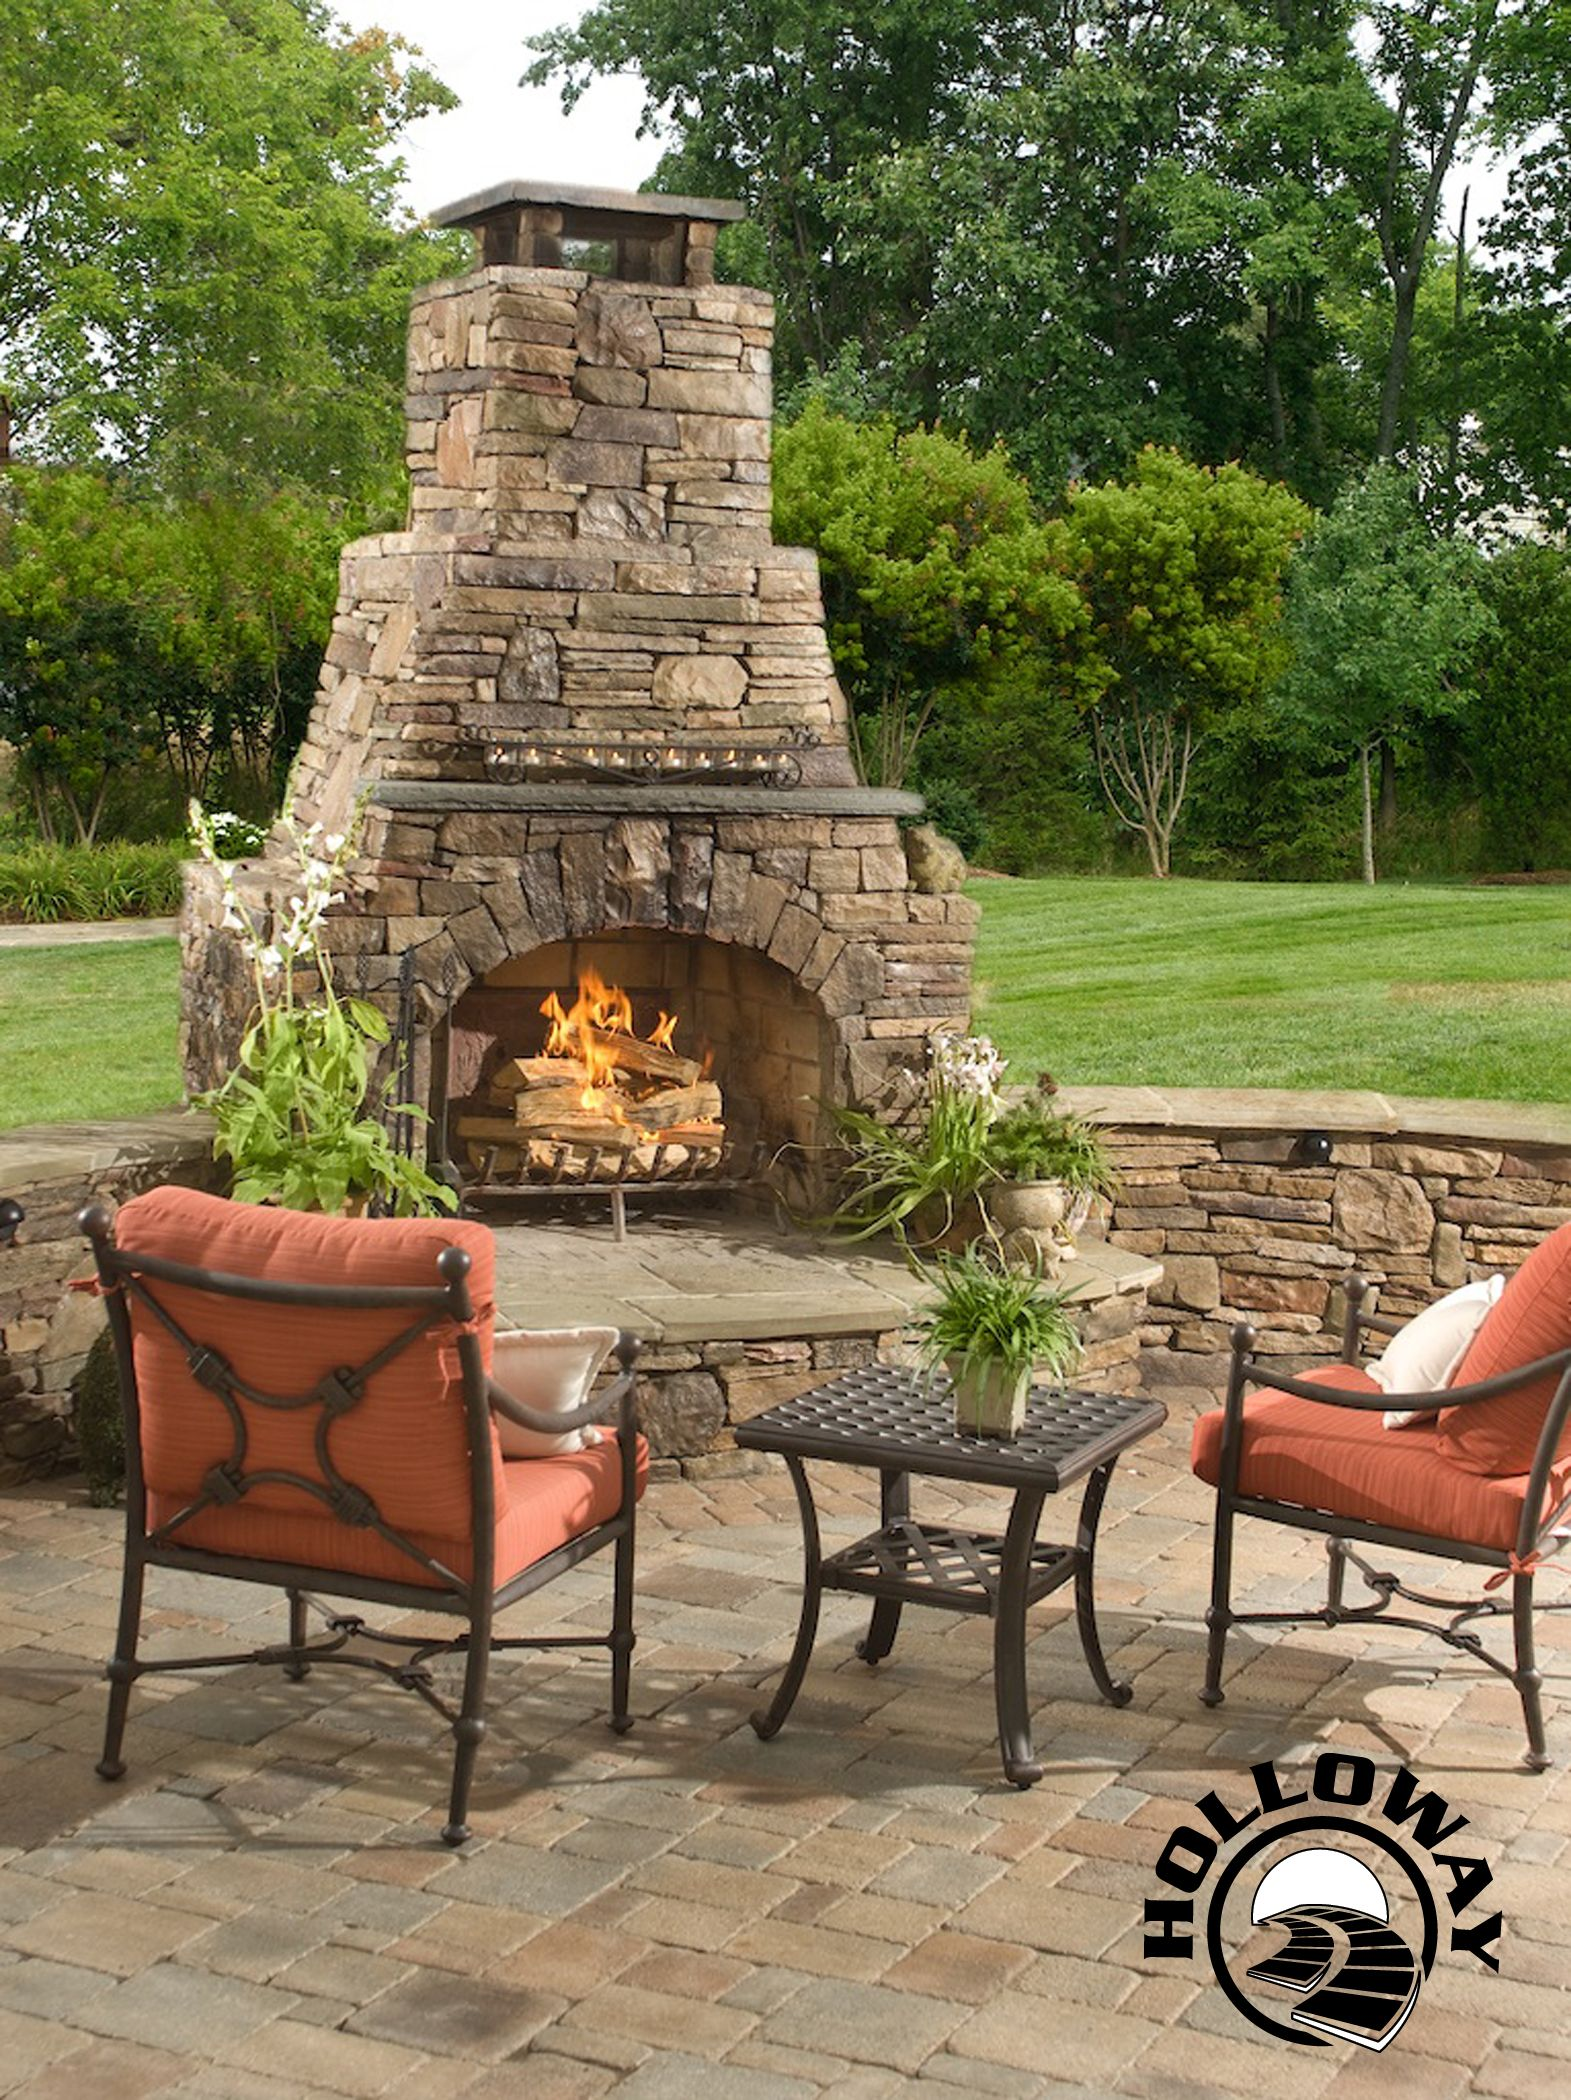 Outdoor Fireplace 72 Custom Masonry Outdoor Fireplace With Chimney Extension Fireplace Features Outdoor Fireplace Backyard Fireplace Diy Outdoor Fireplace